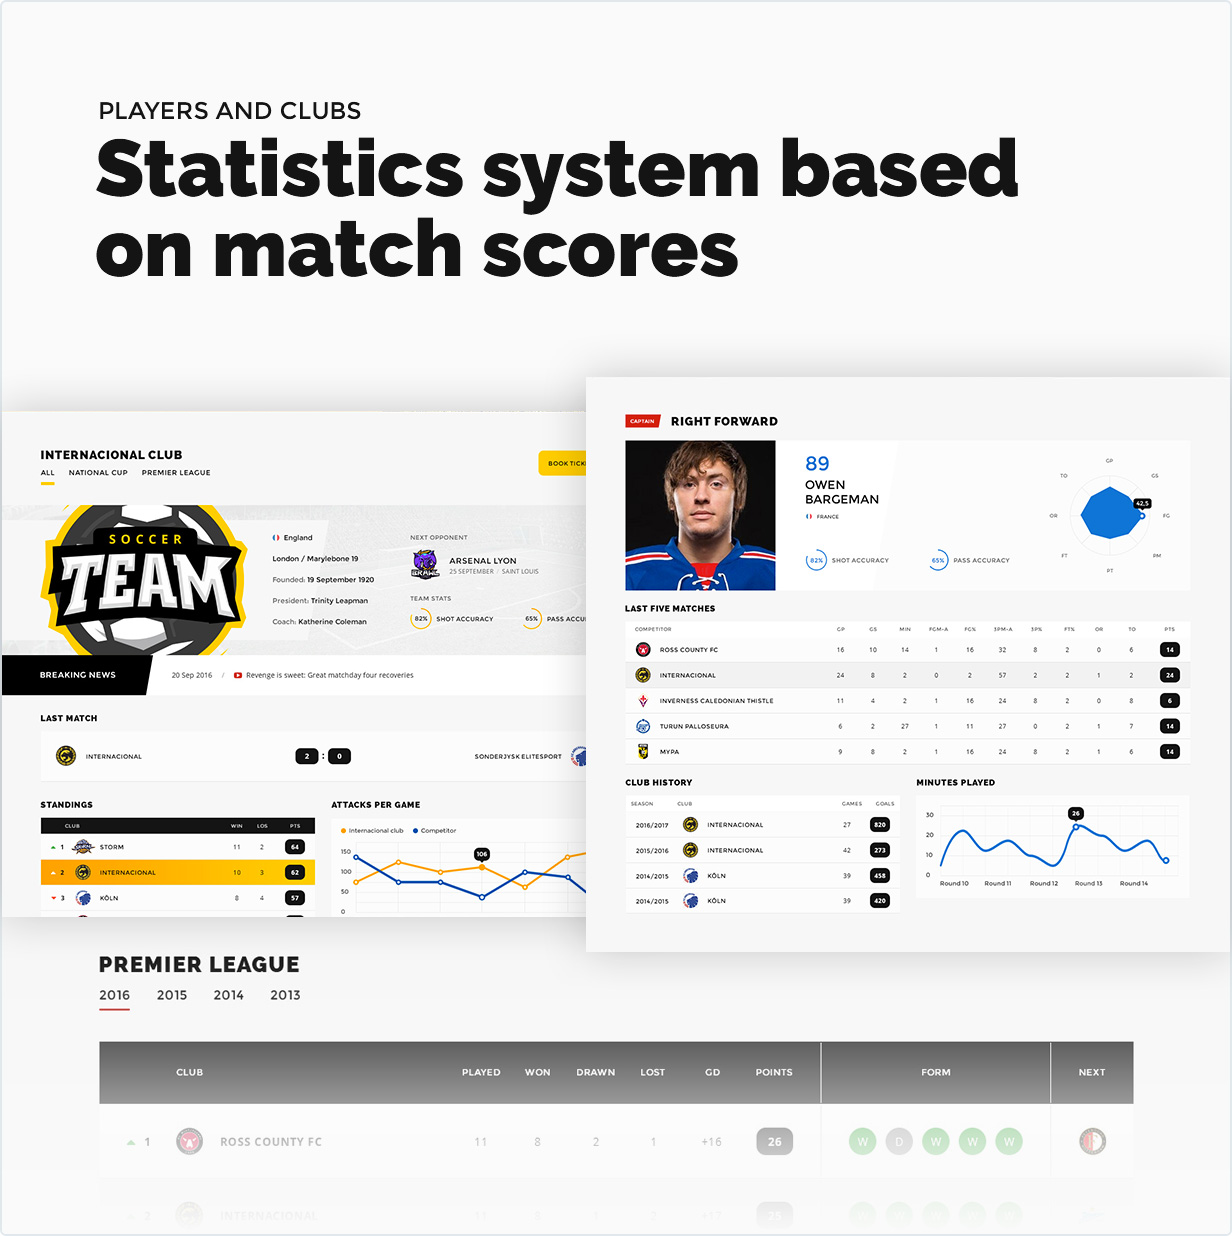 Statistic system based on match scores